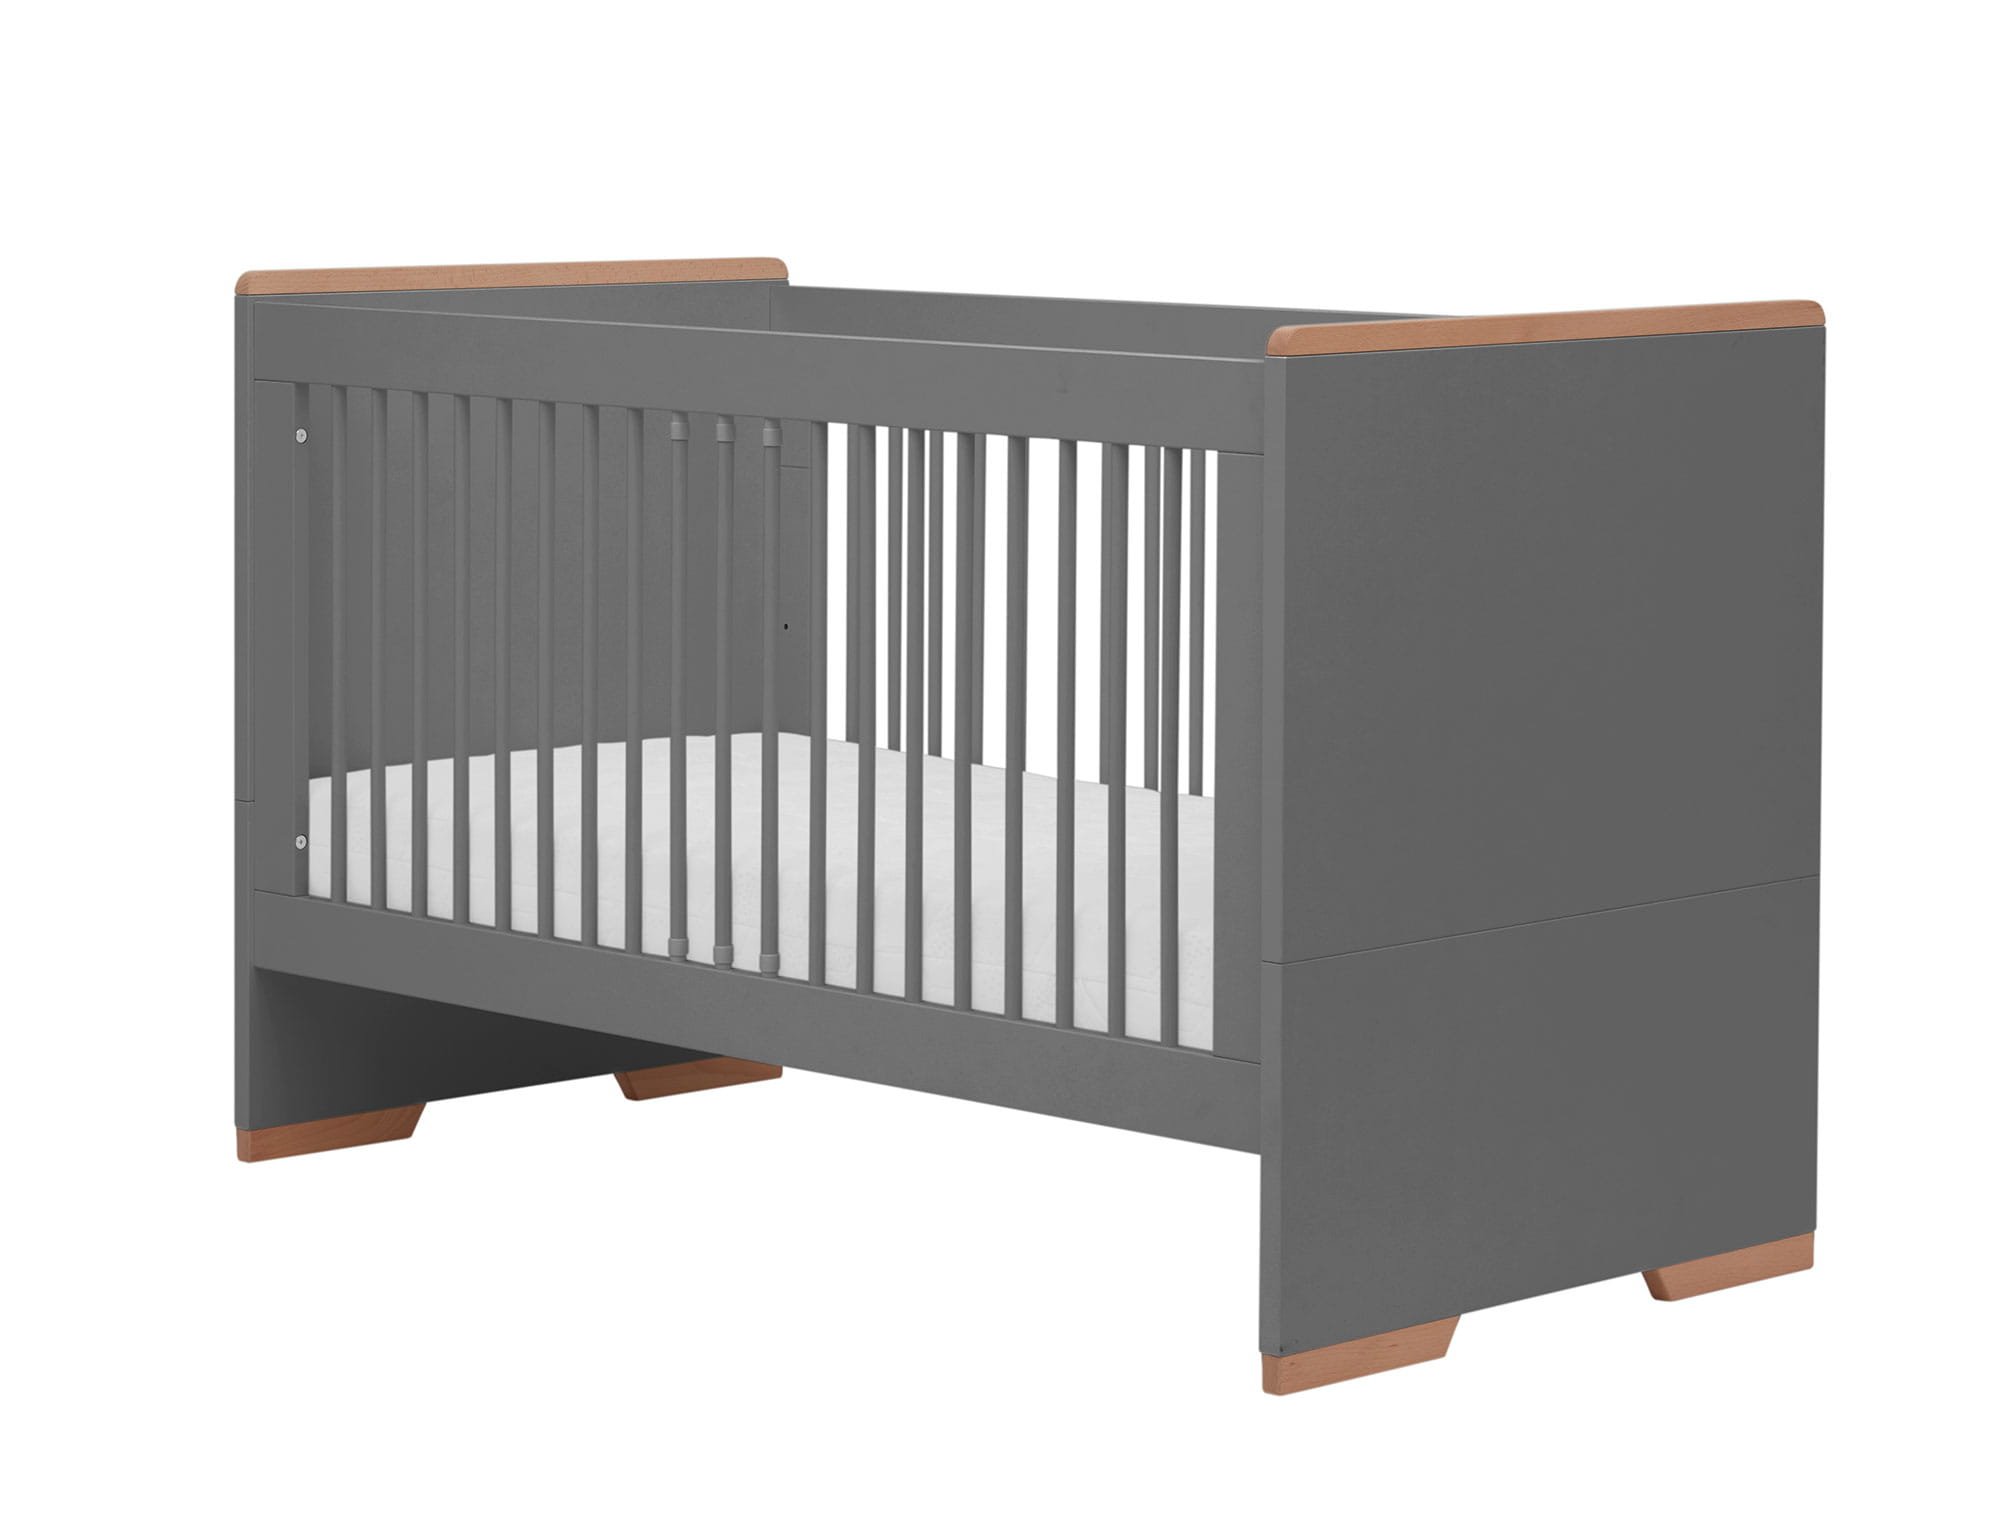 Snap_cot-bed140x70_dark_grey_1.jpg